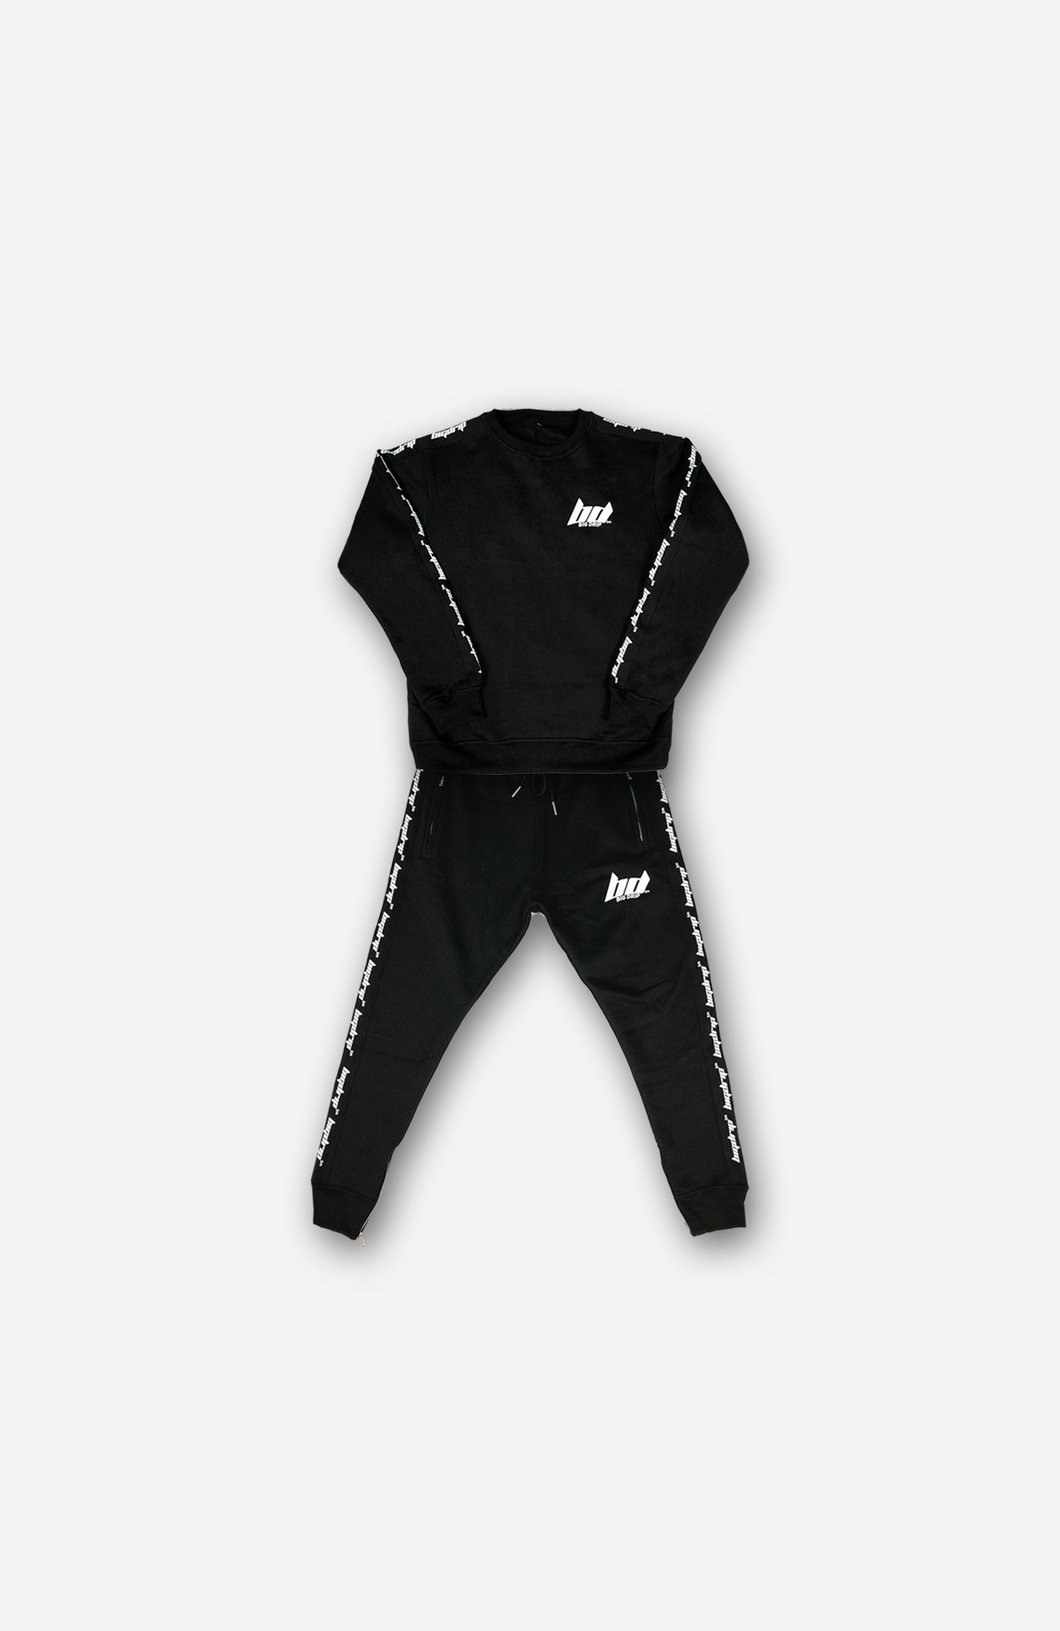 TracksuitV3 Trainingsanzug Set